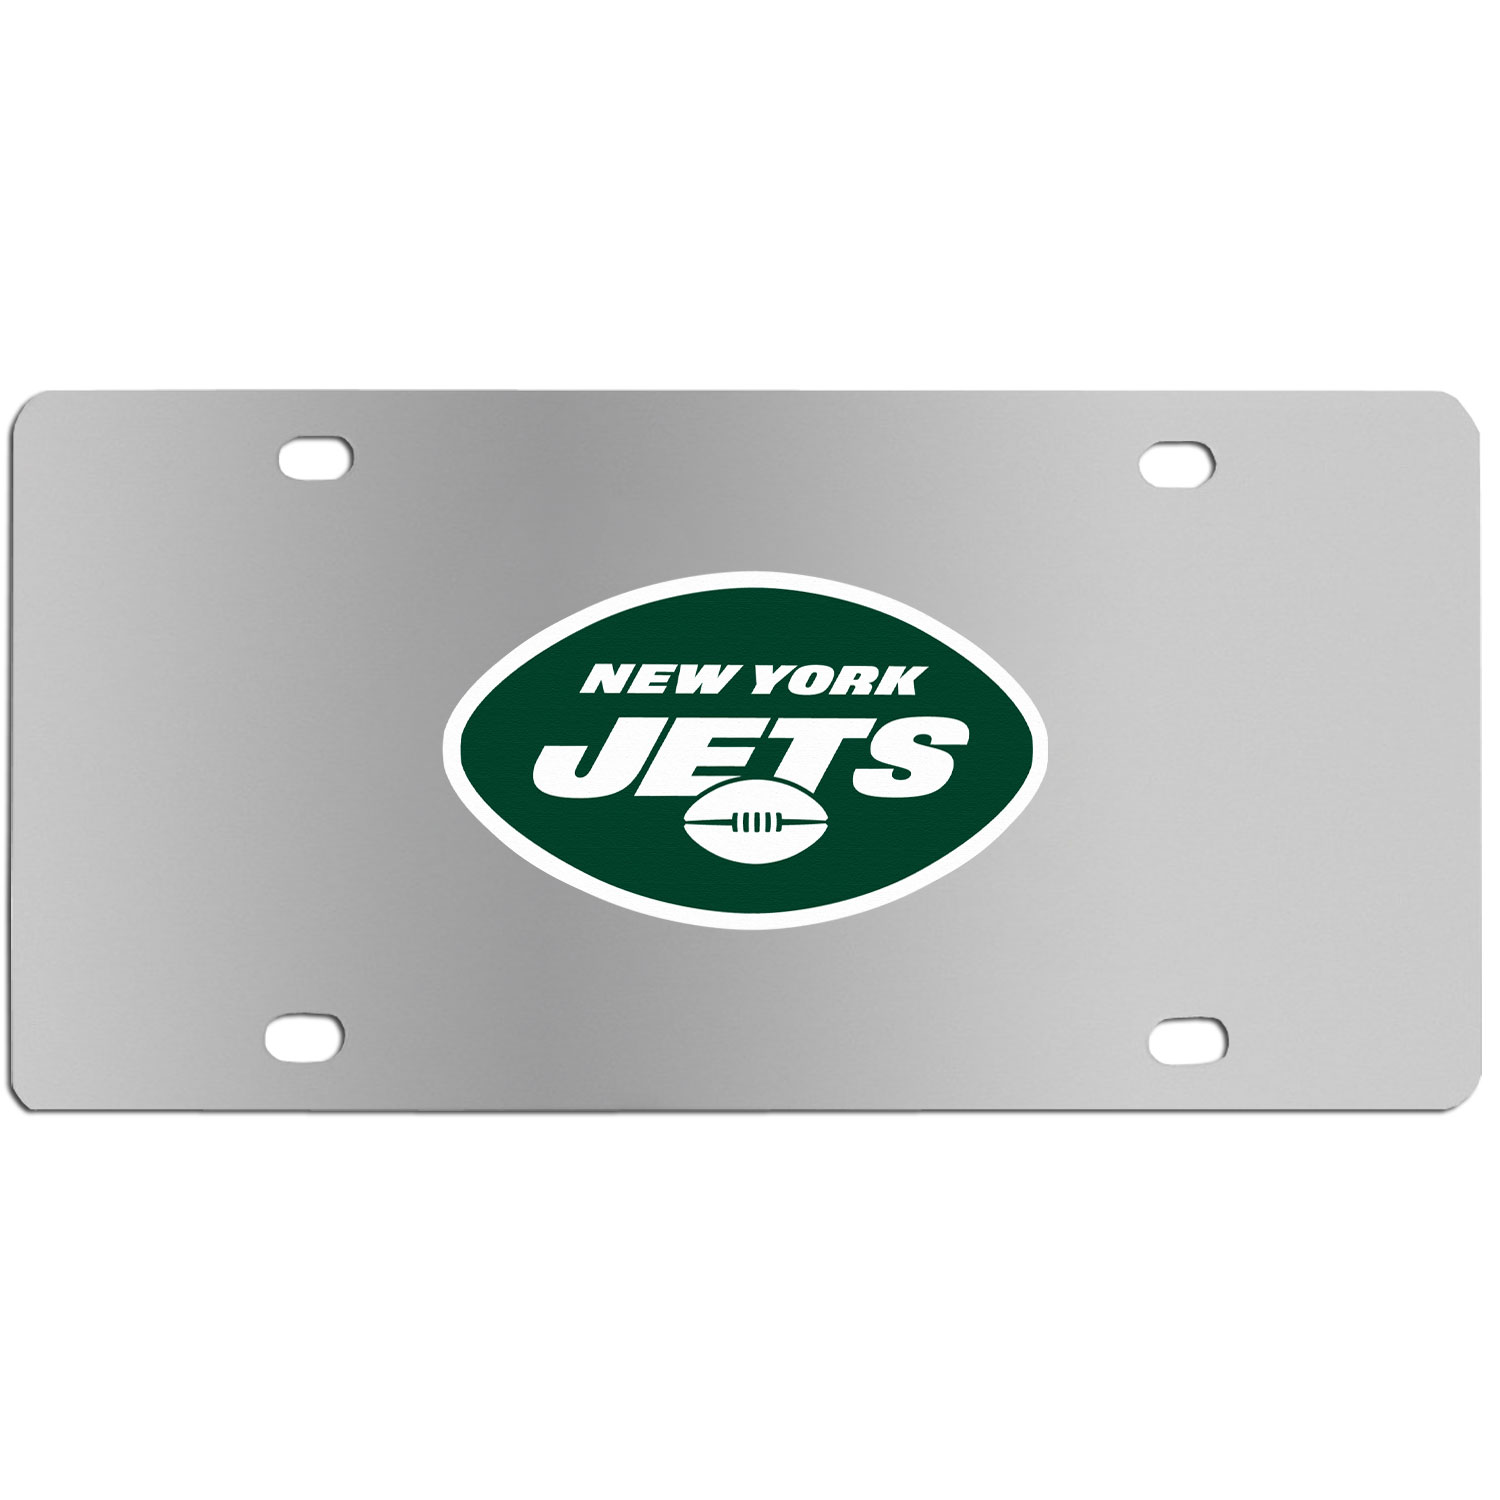 New York Jets Steel License Plate Wall Plaque - This high-quality stainless steel license plate features a detailed team logo on a the polished surface. The attractive plate is perfect for wall mounting in your home or office to become the perfect die-hard New York Jets fan decor.